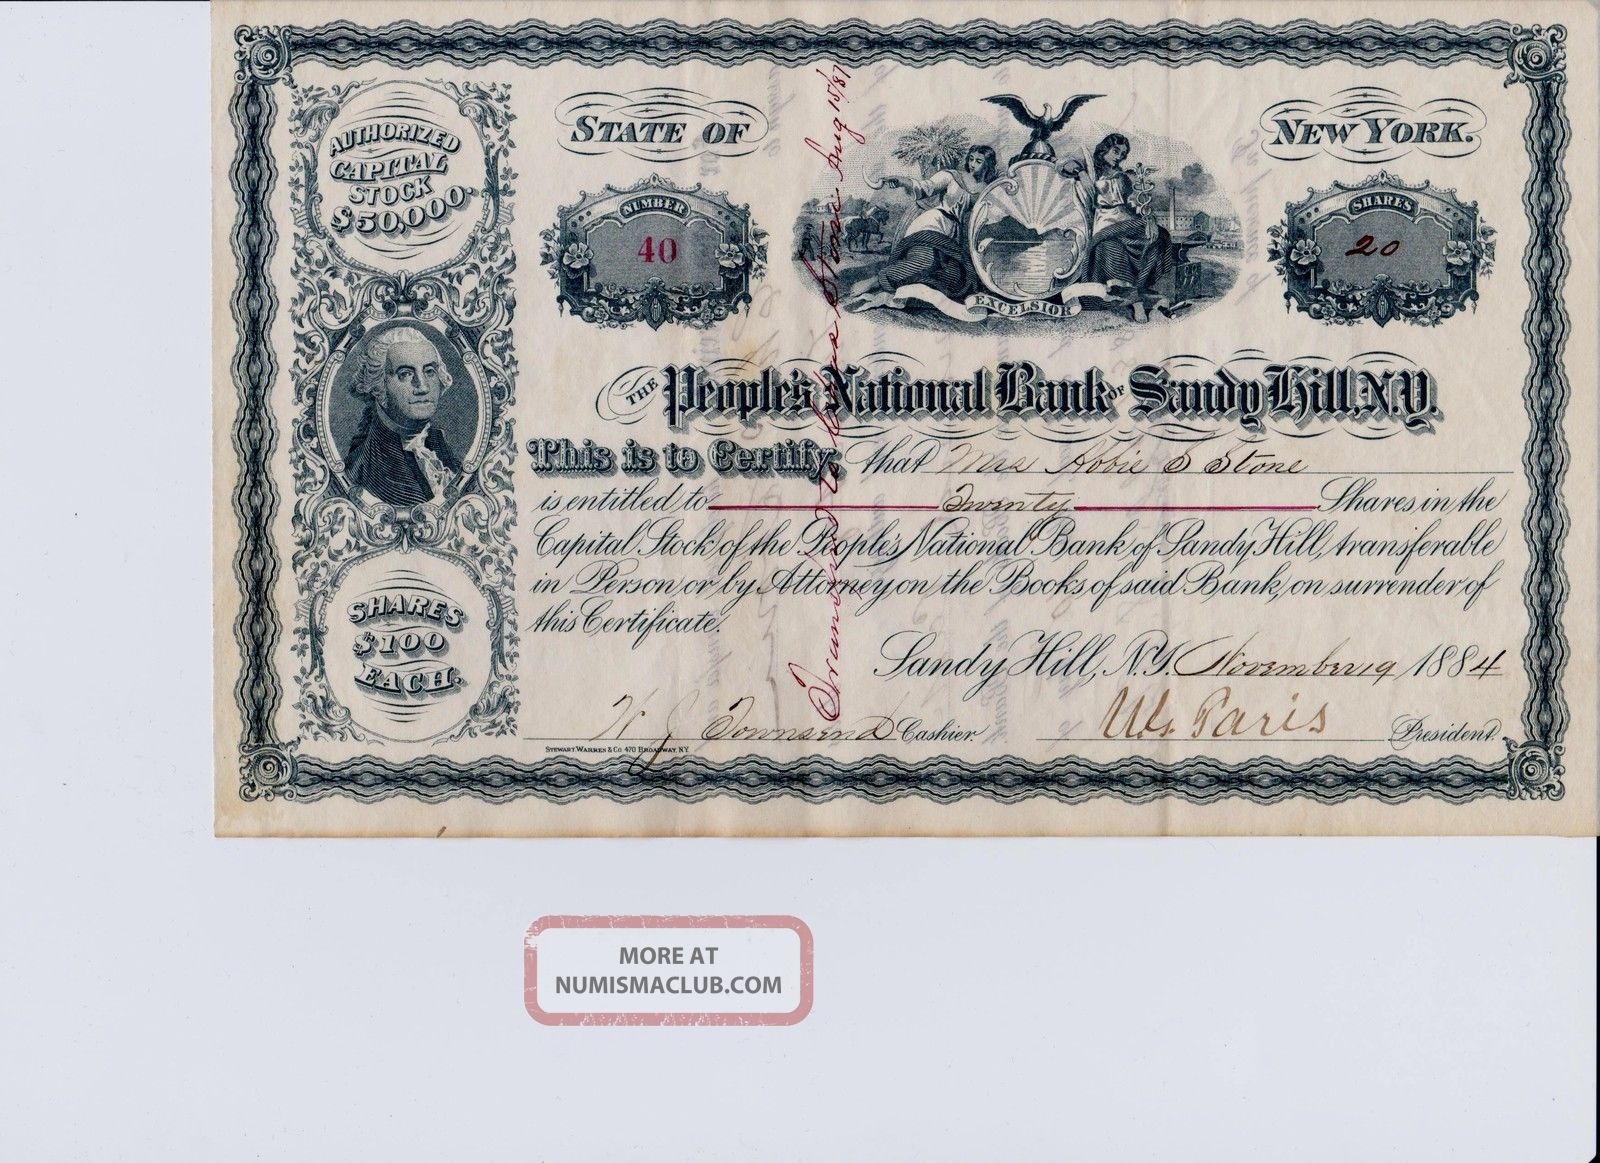 Peoples National Bank Of Sandy Hill,  Ny.  Stock Certificate Issued 11/19/1884 Stocks & Bonds, Scripophily photo